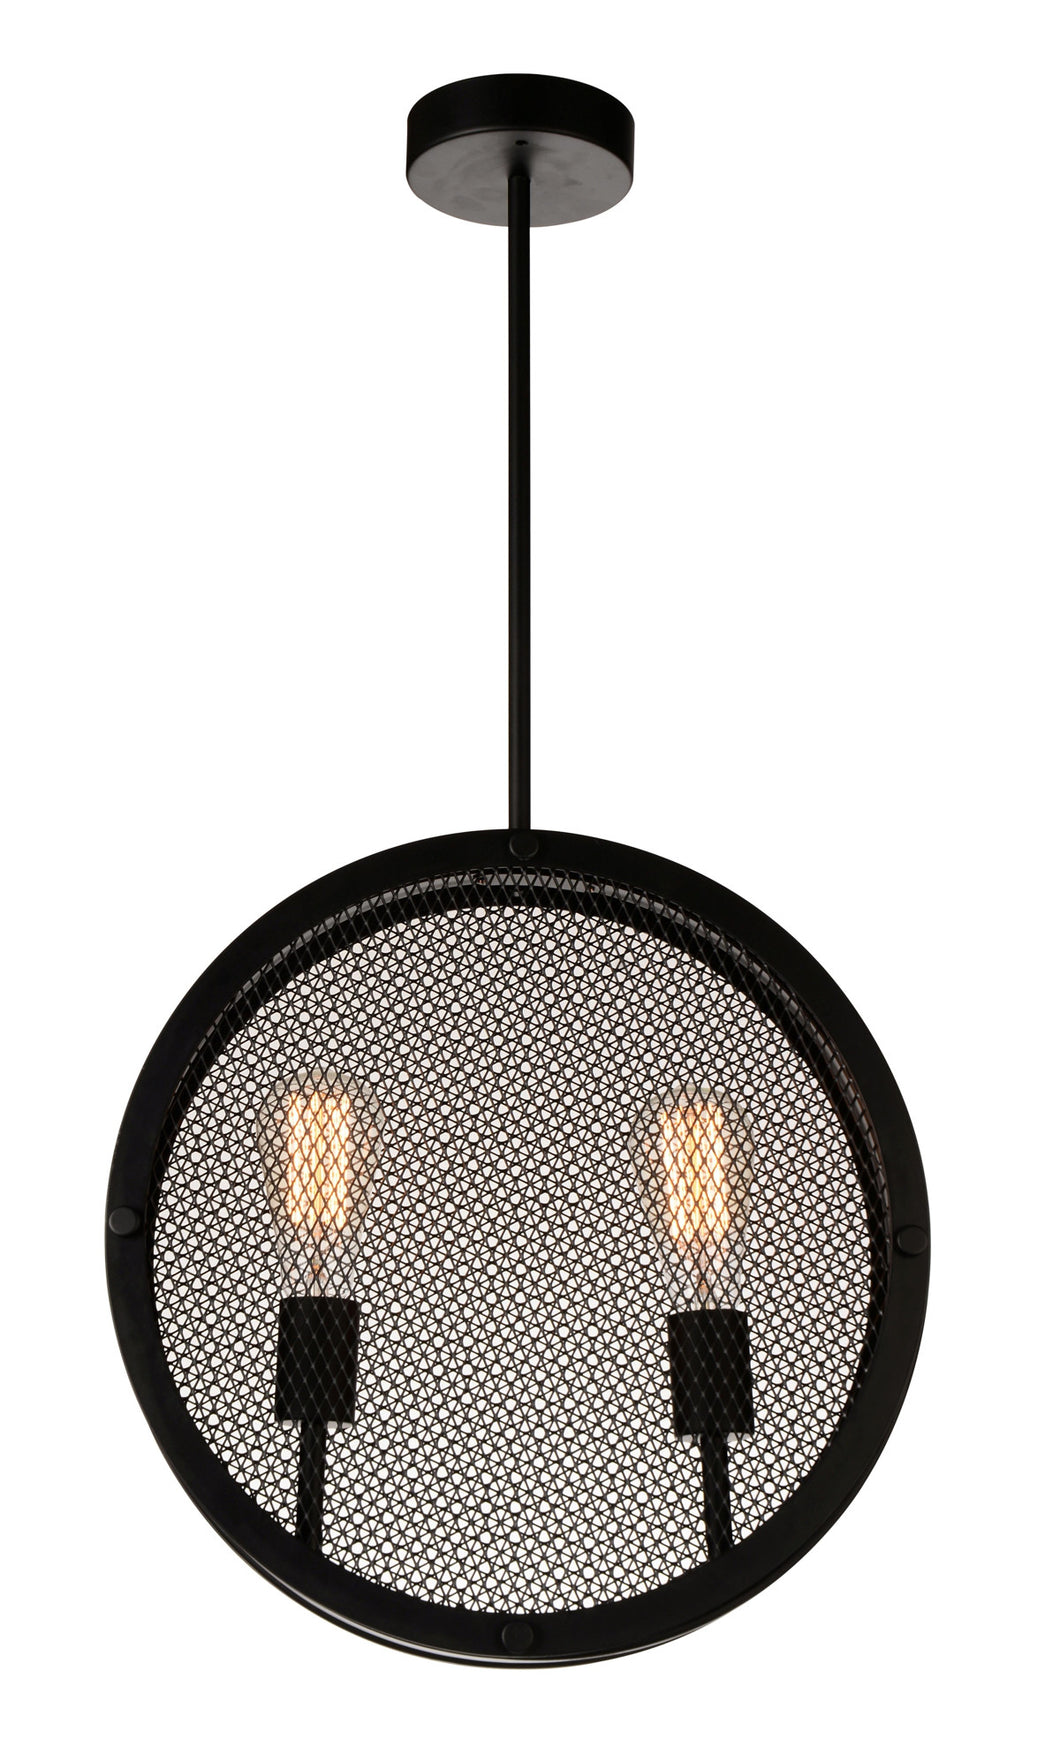 2 Light Up Pendant with Black finish